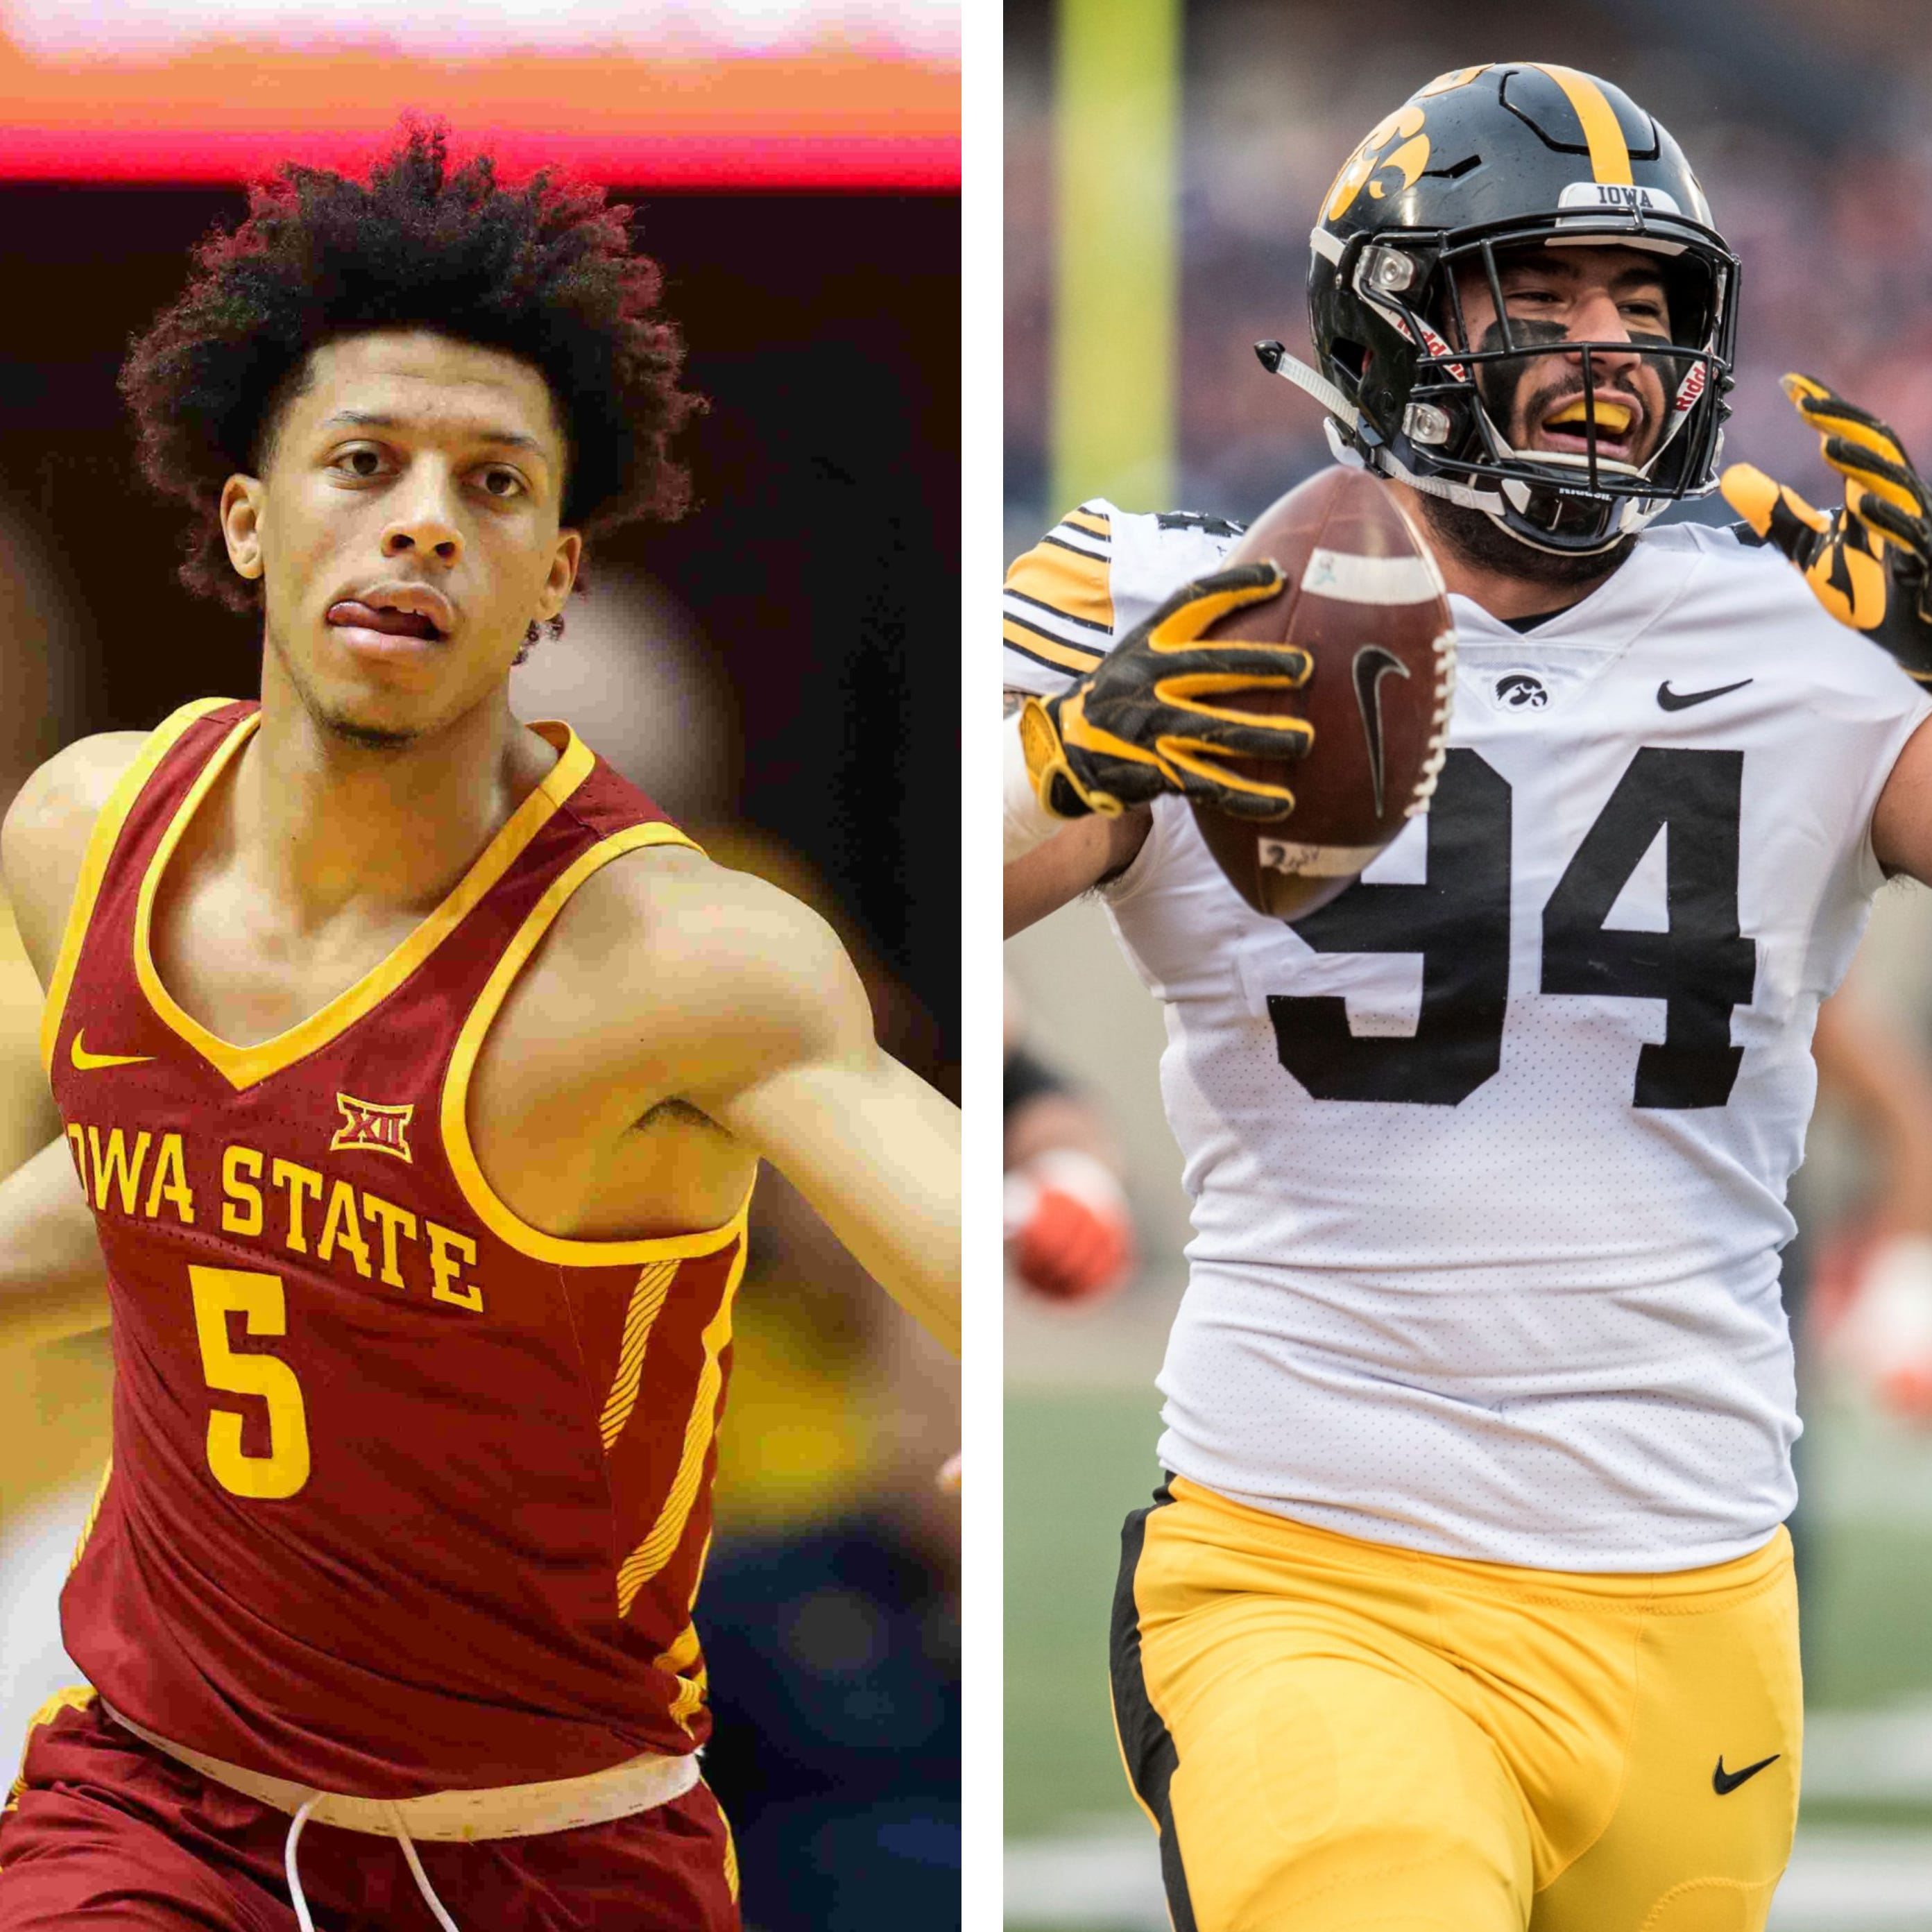 Recruiting mailbag: Is a 5-star recruit more valuable in football or basketball?